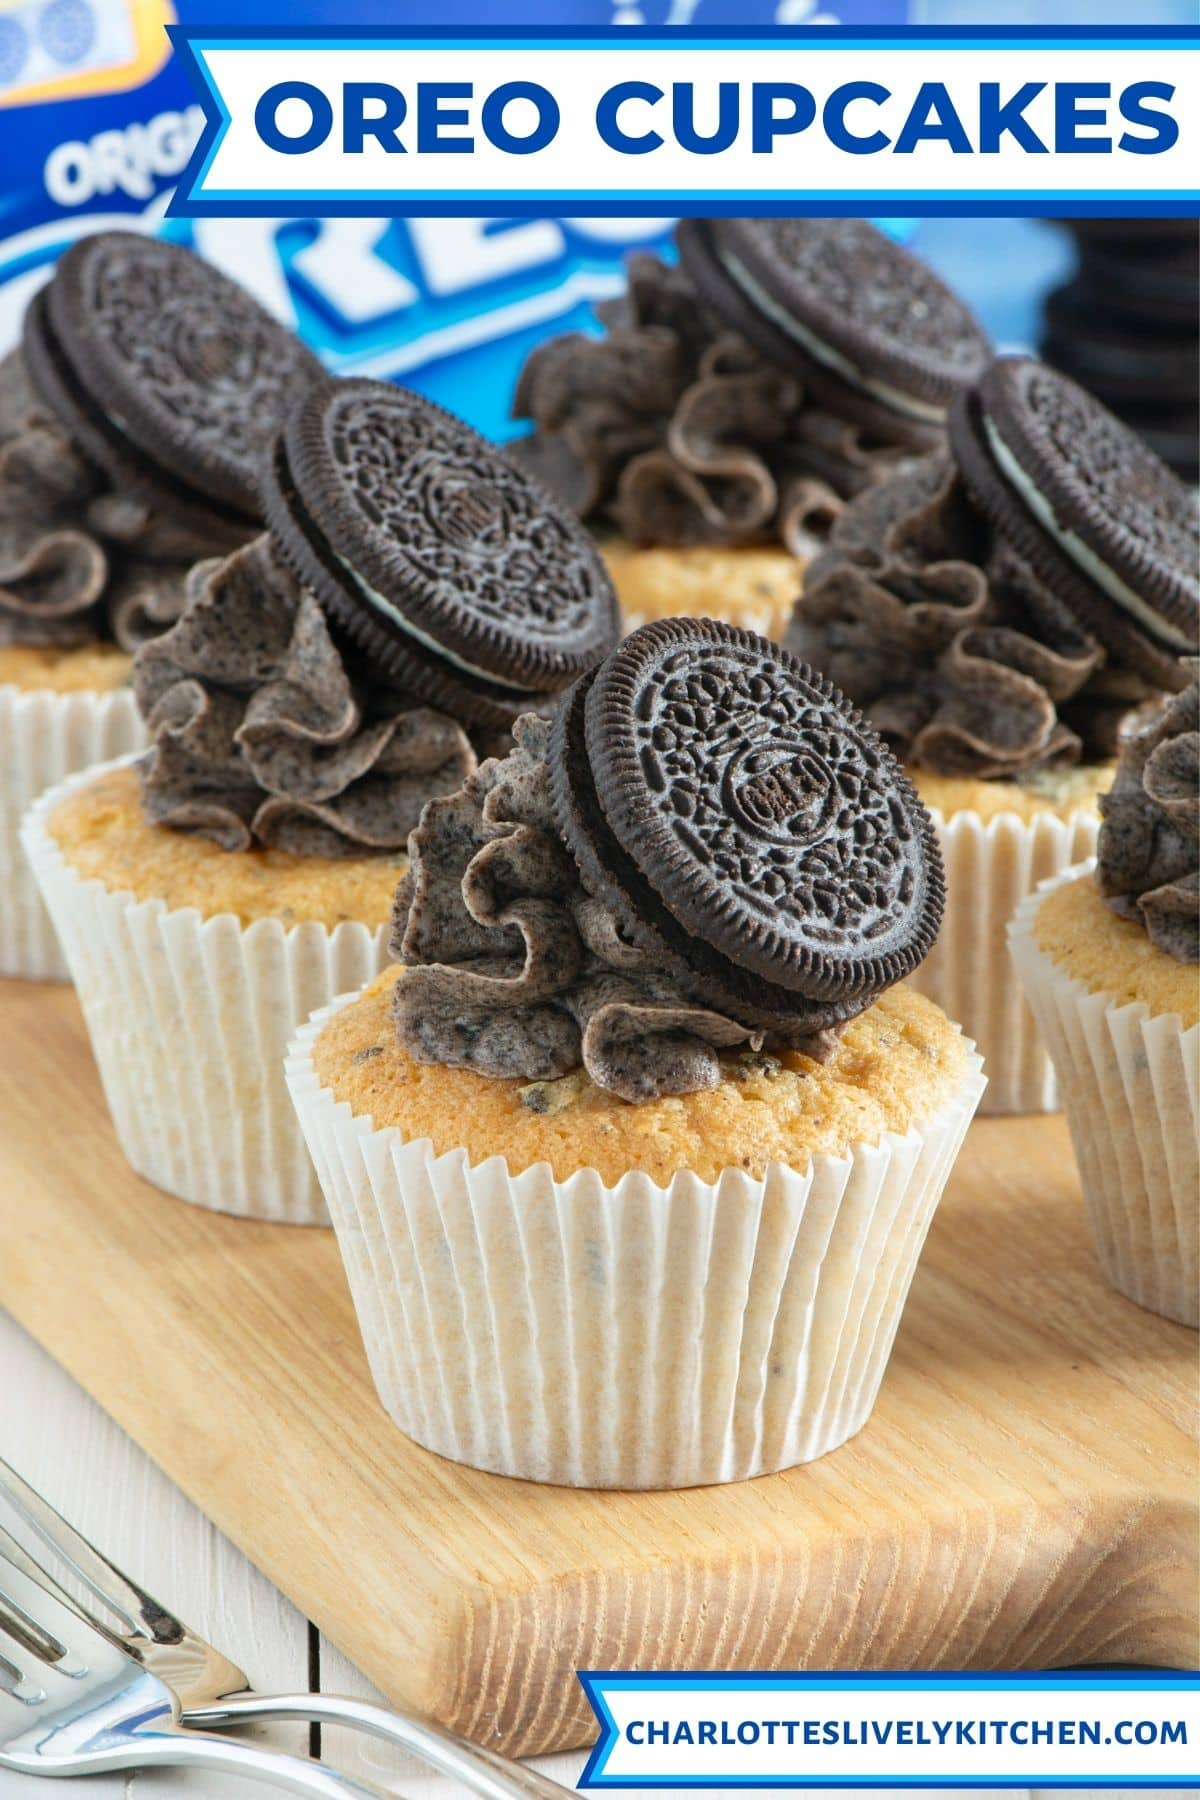 Close up of decorated oreo cupcakes on a wooden board.